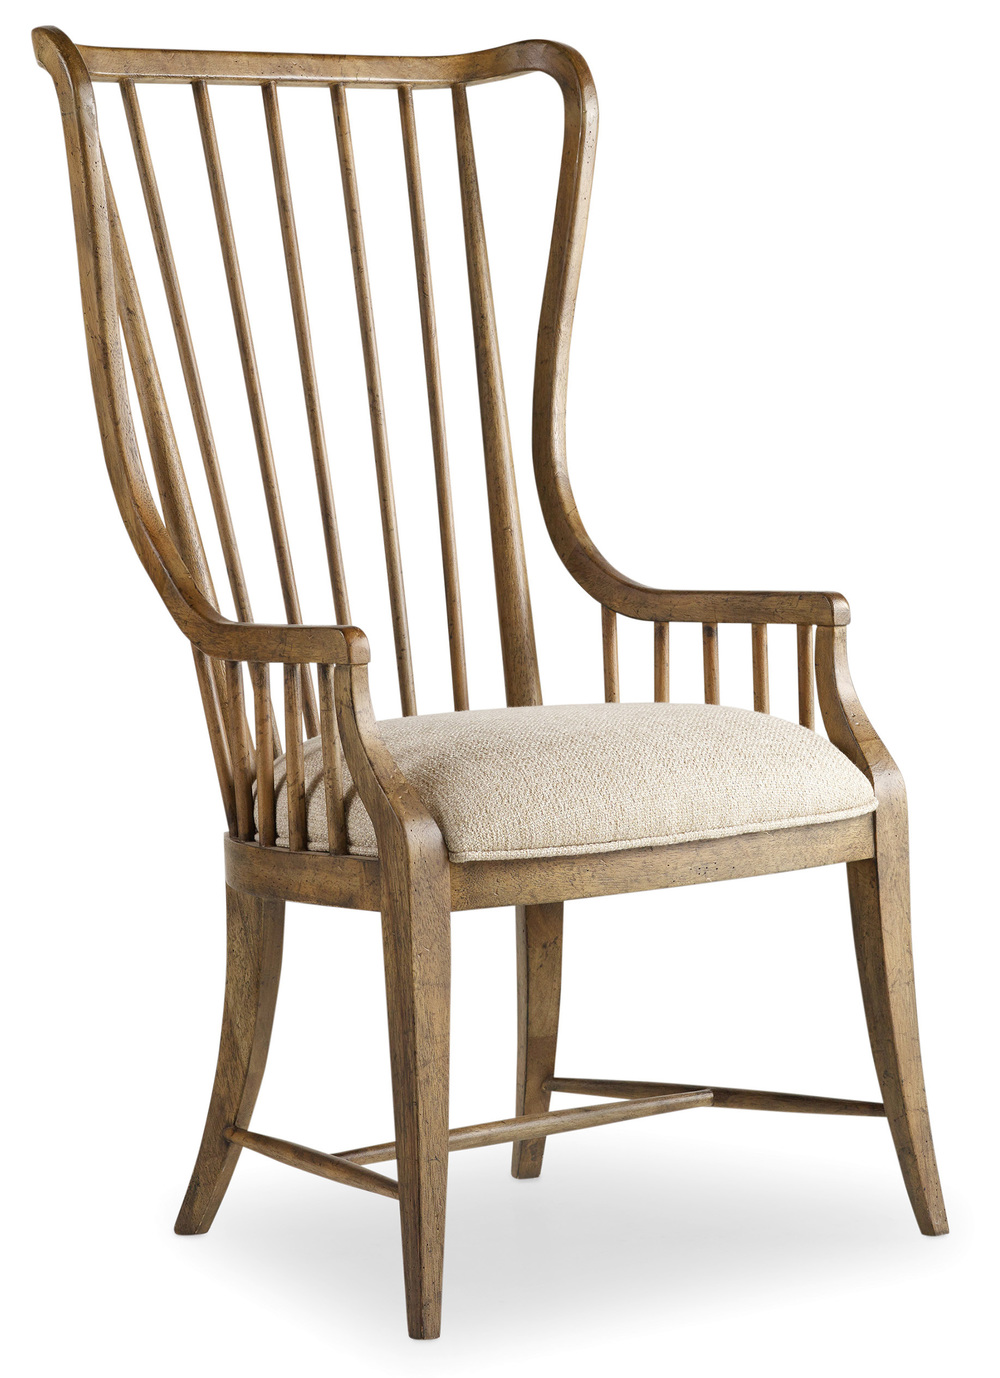 Hooker Furniture - Sanctuary Tall Spindle Arm Chair